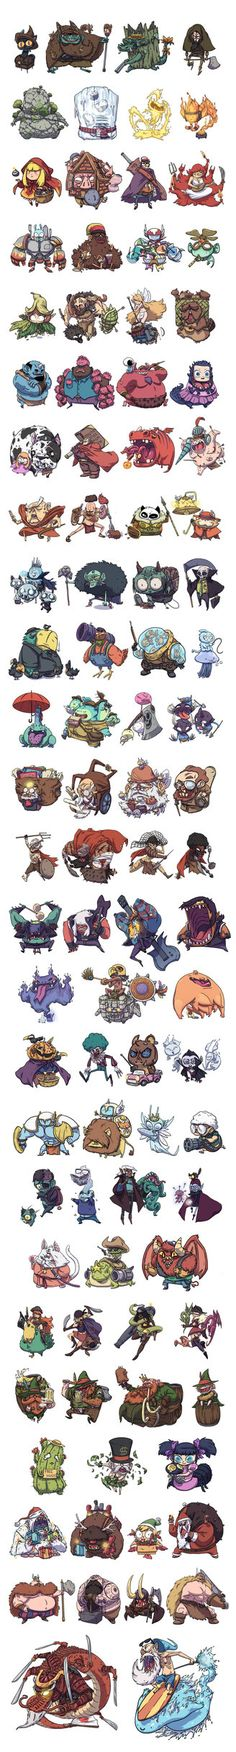 Characters designed originally for a cardgame mobile app, sadly canceled